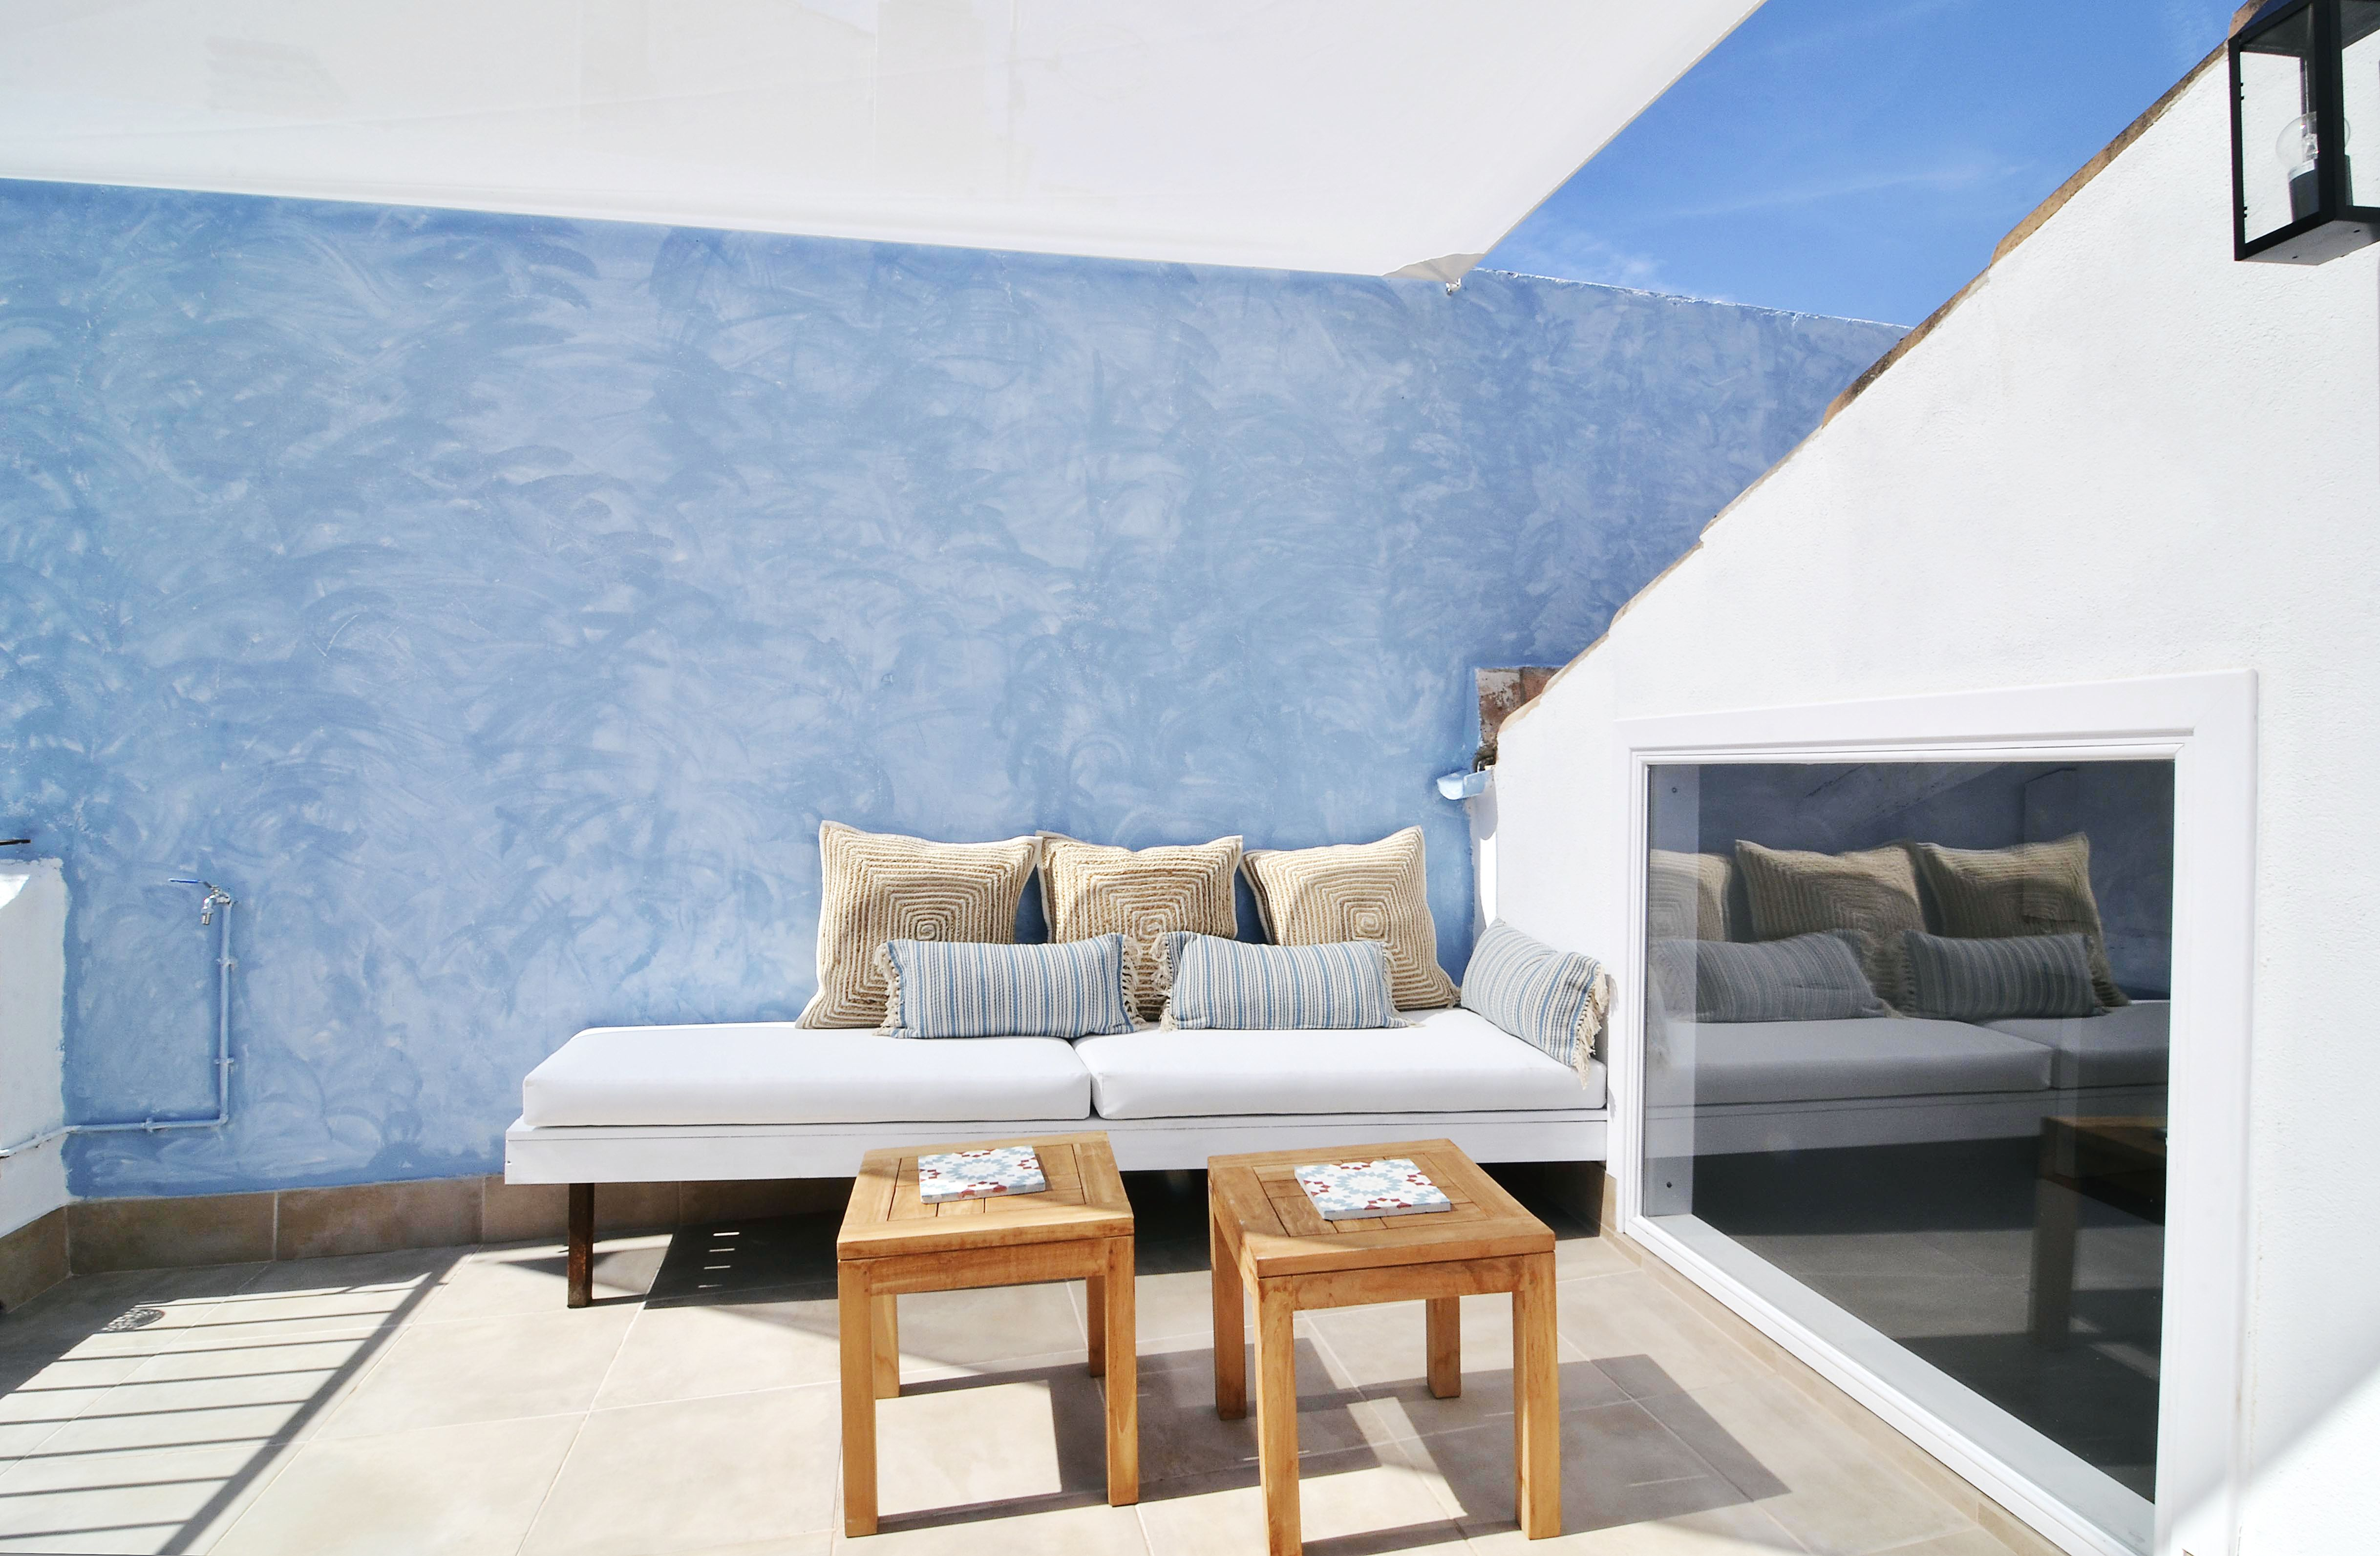 House tour: old fisherman's house in Sitges: sun-lit terrace with a blue wall